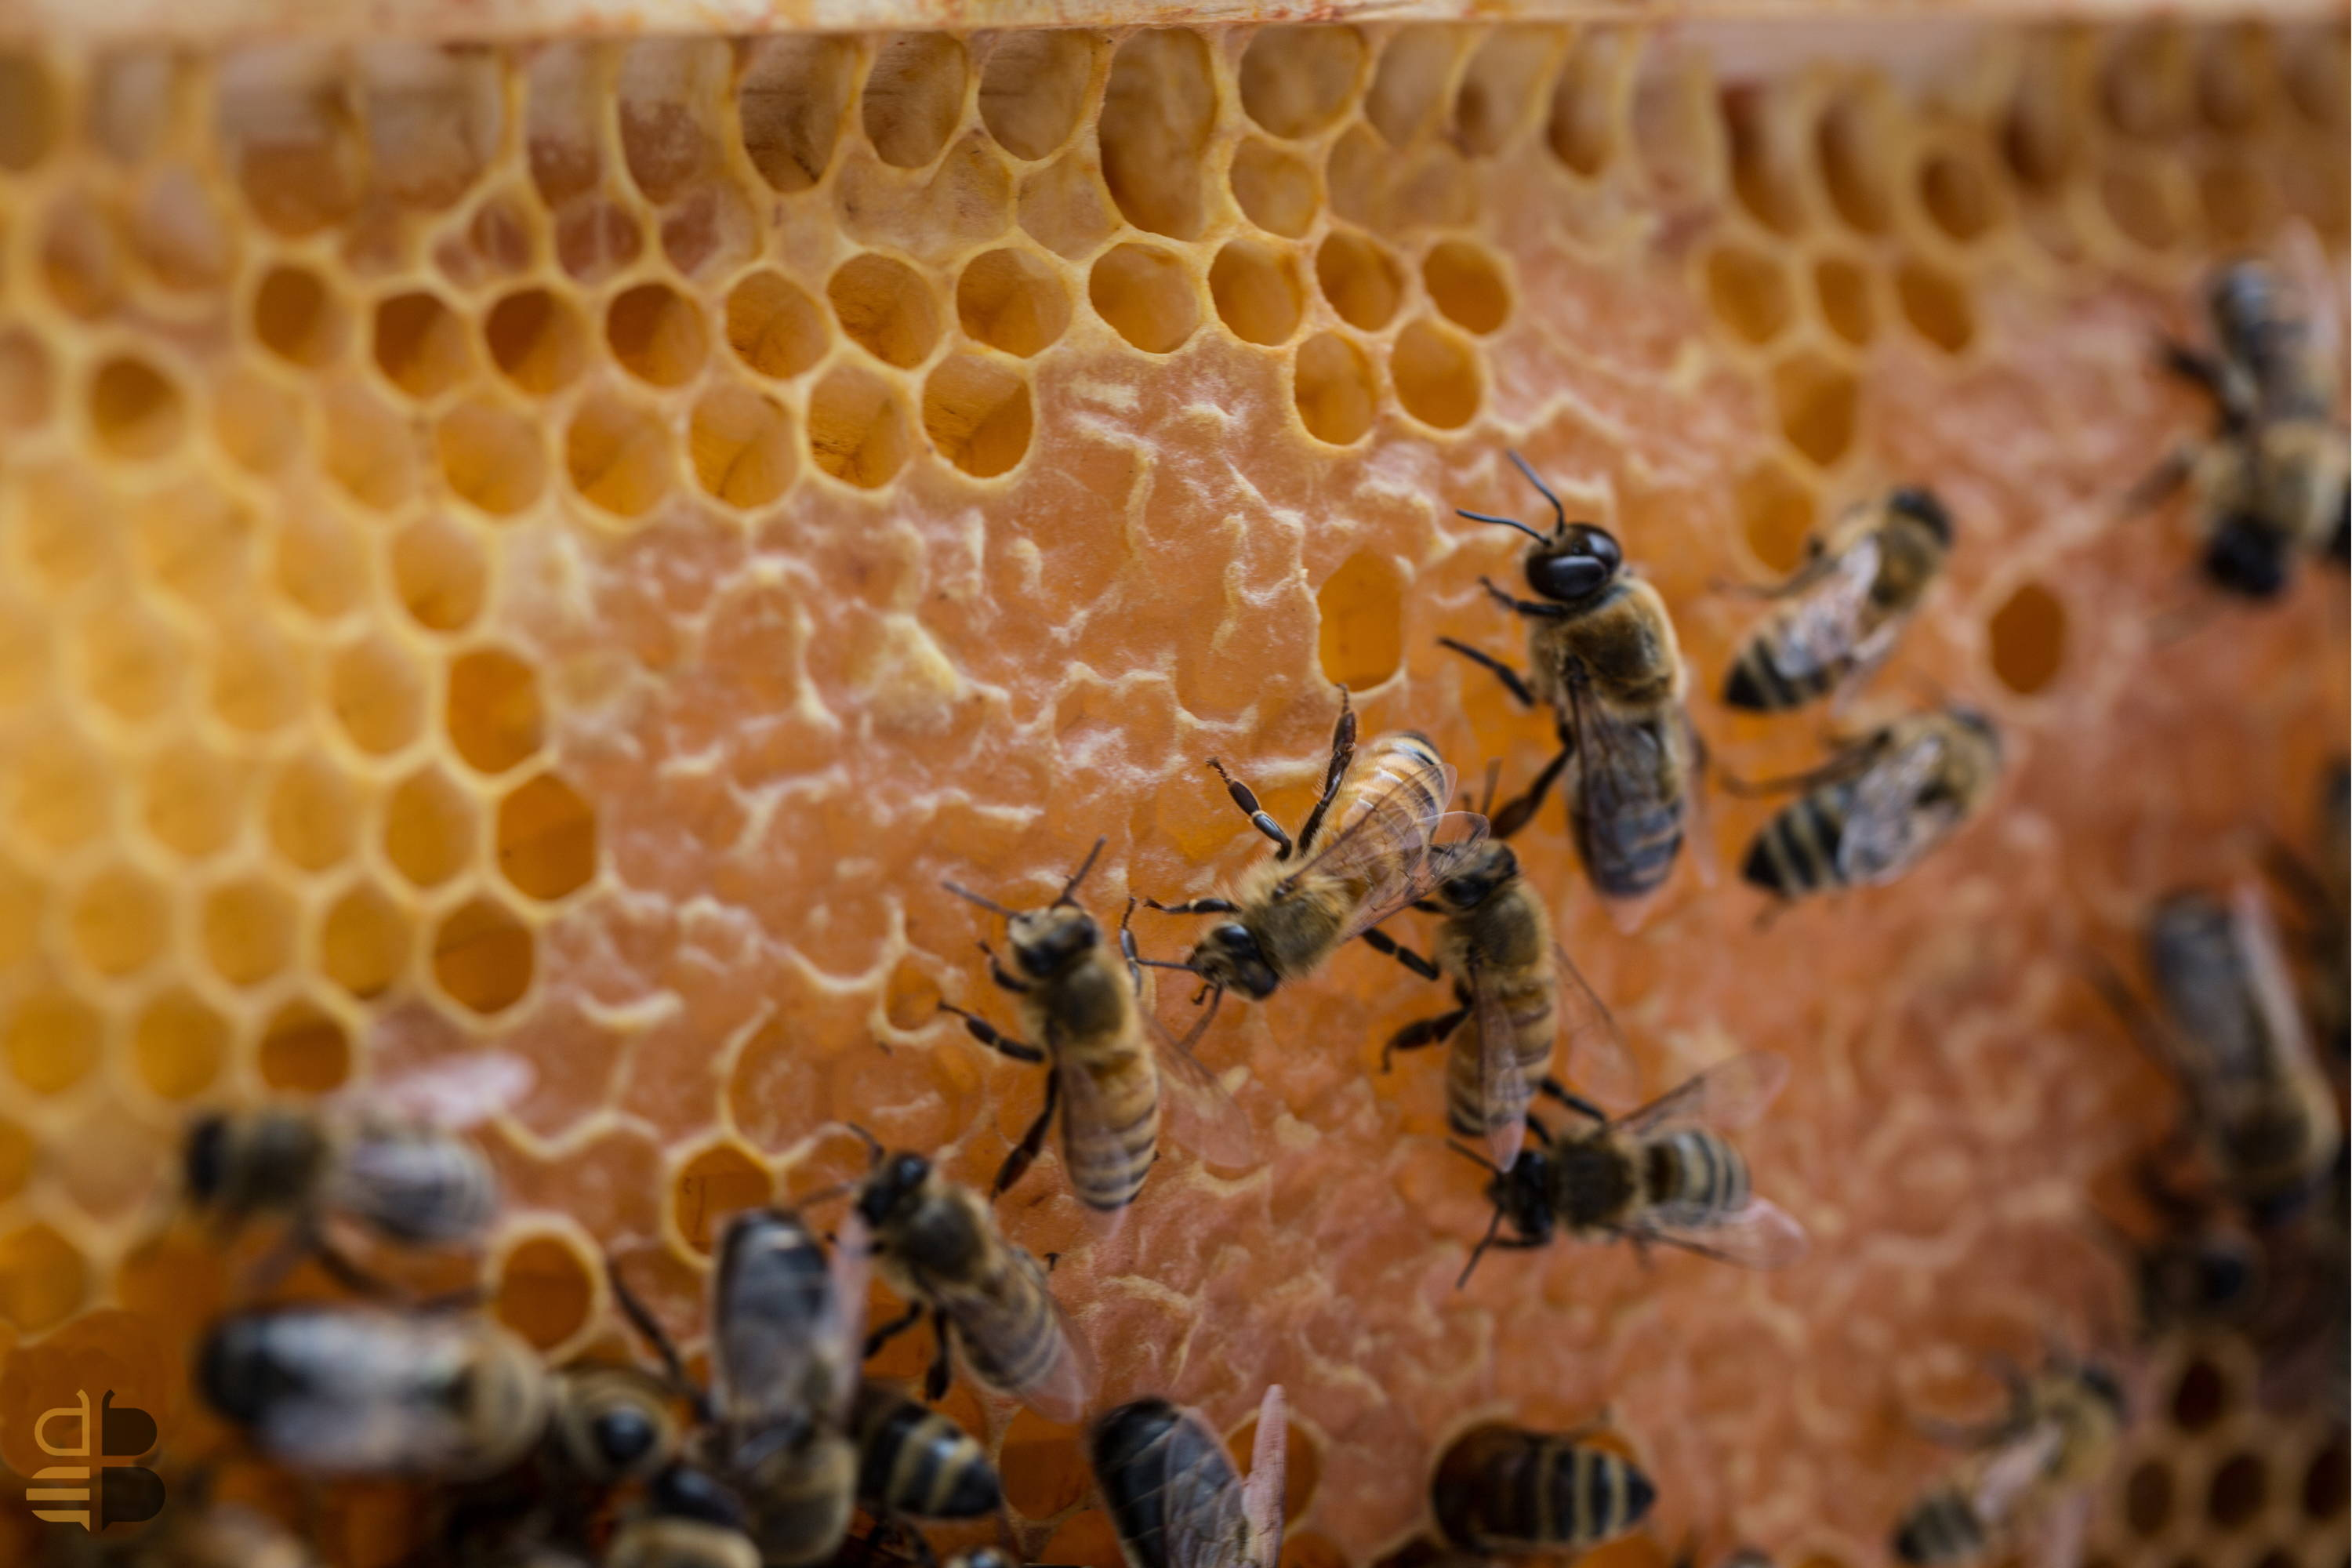 ORGANIC TREATMENTS AND HIVE ECOLOGY